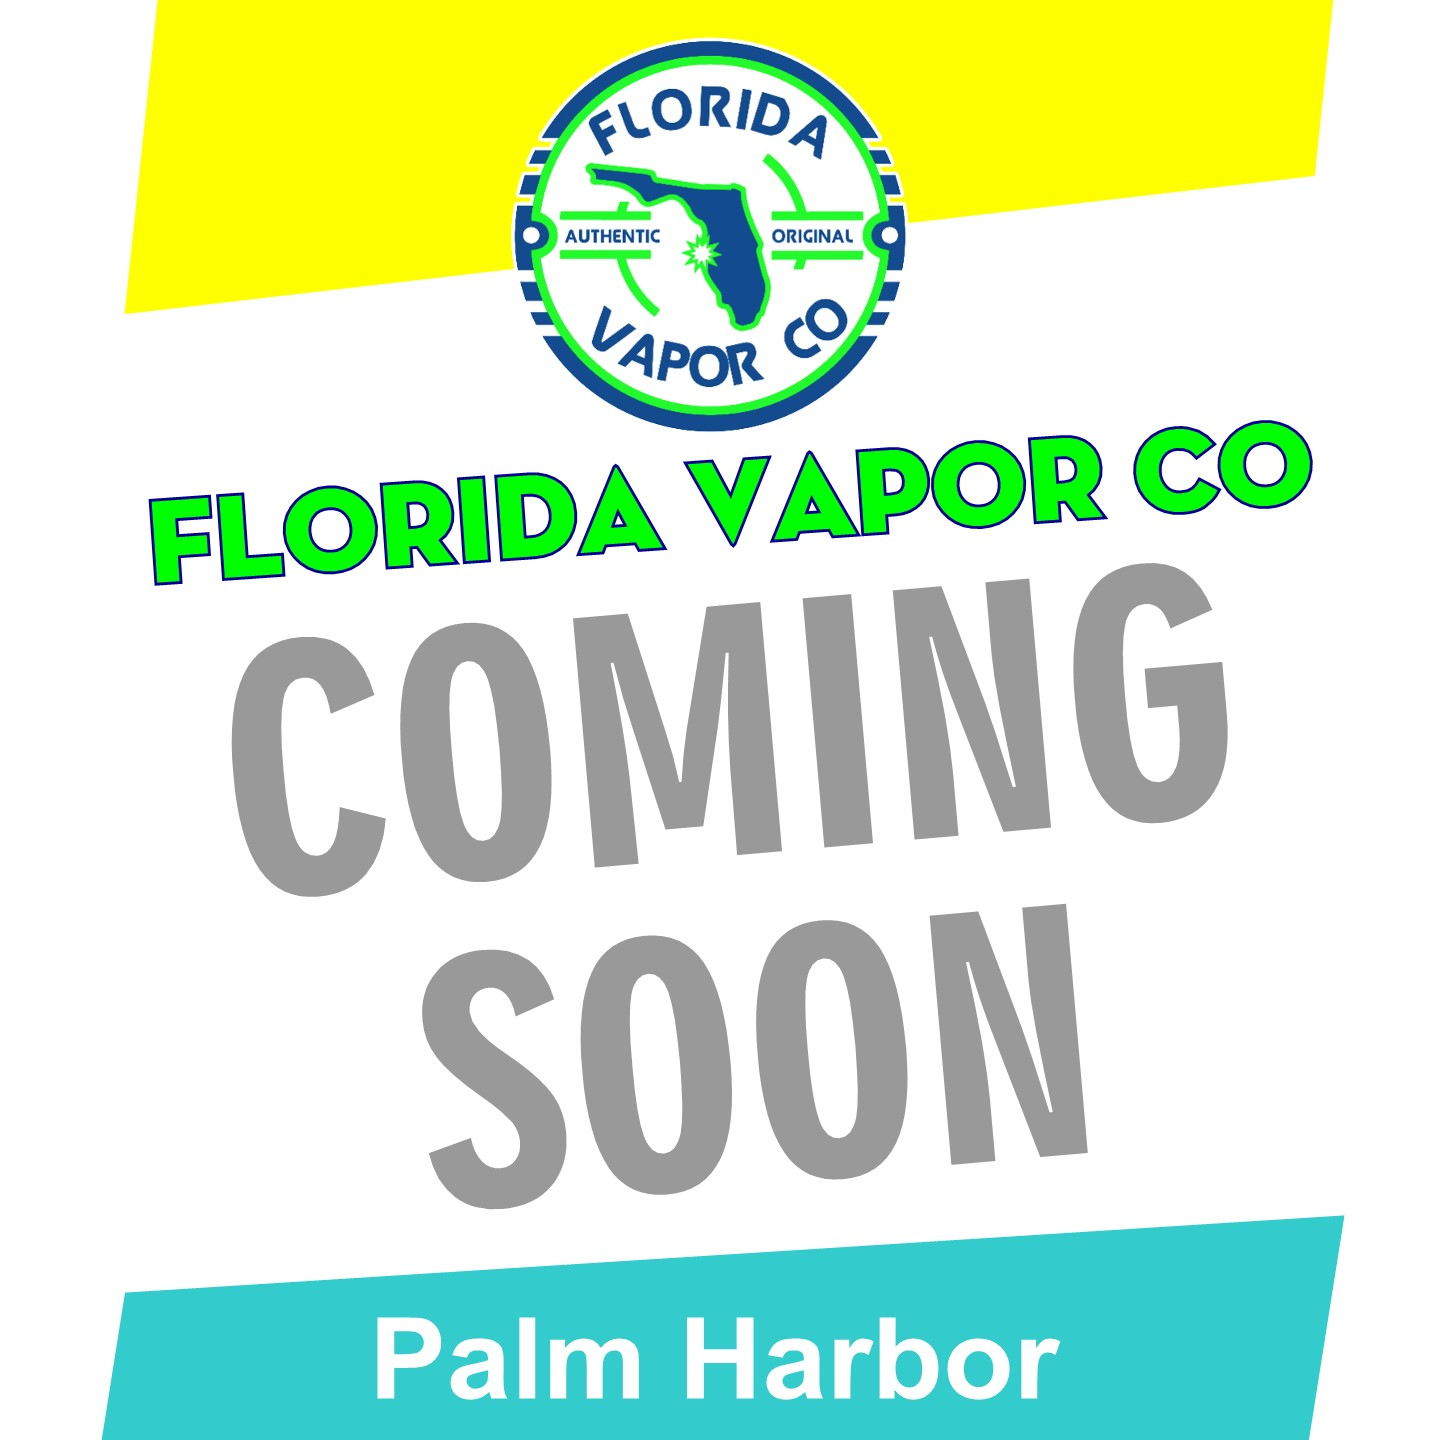 fla_vapor_co_palm_harbor.jpg